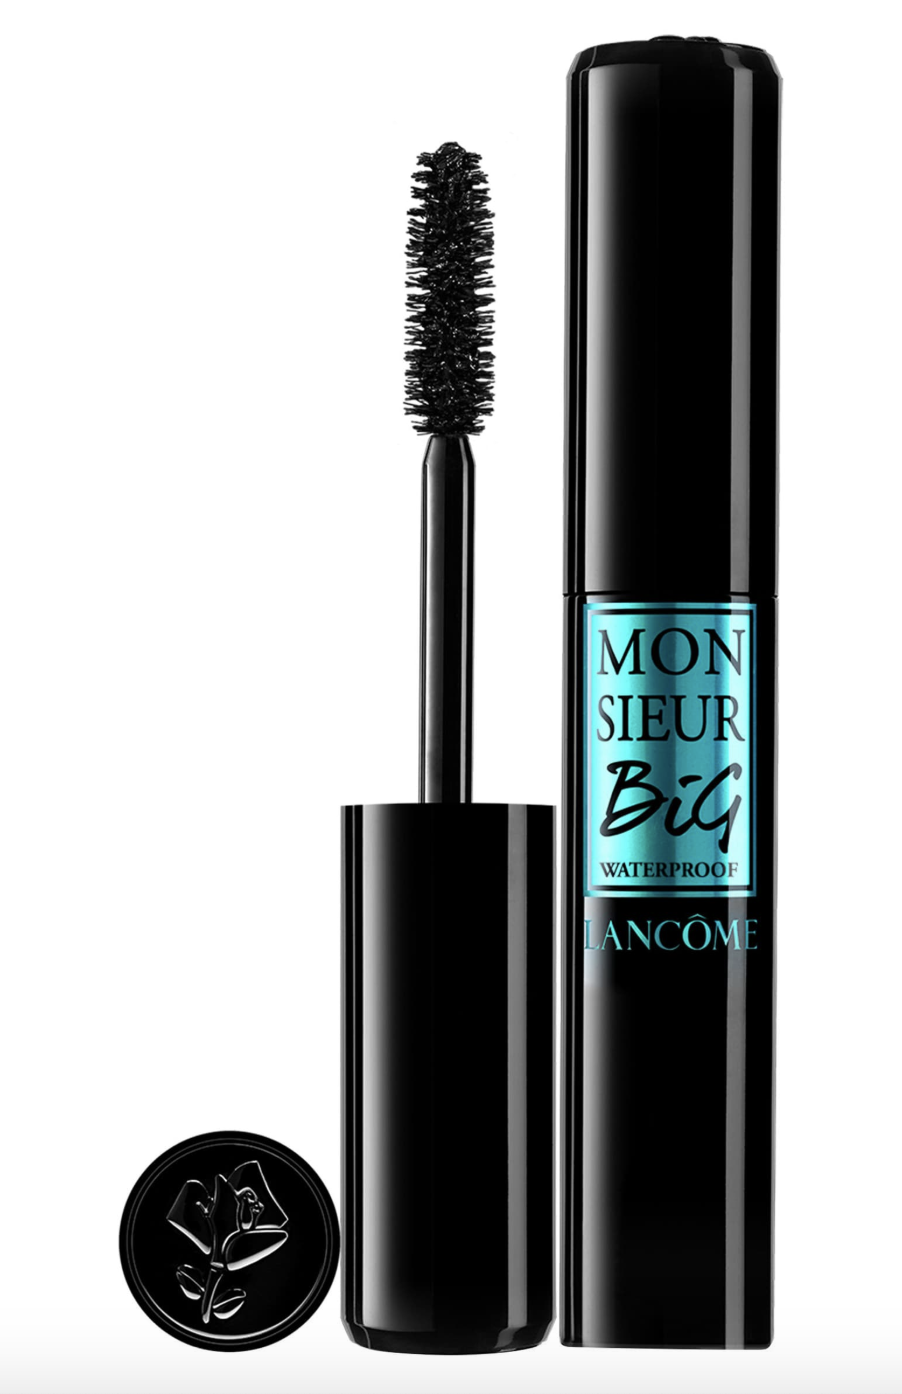 Lancome monsier big waterpoof mascara